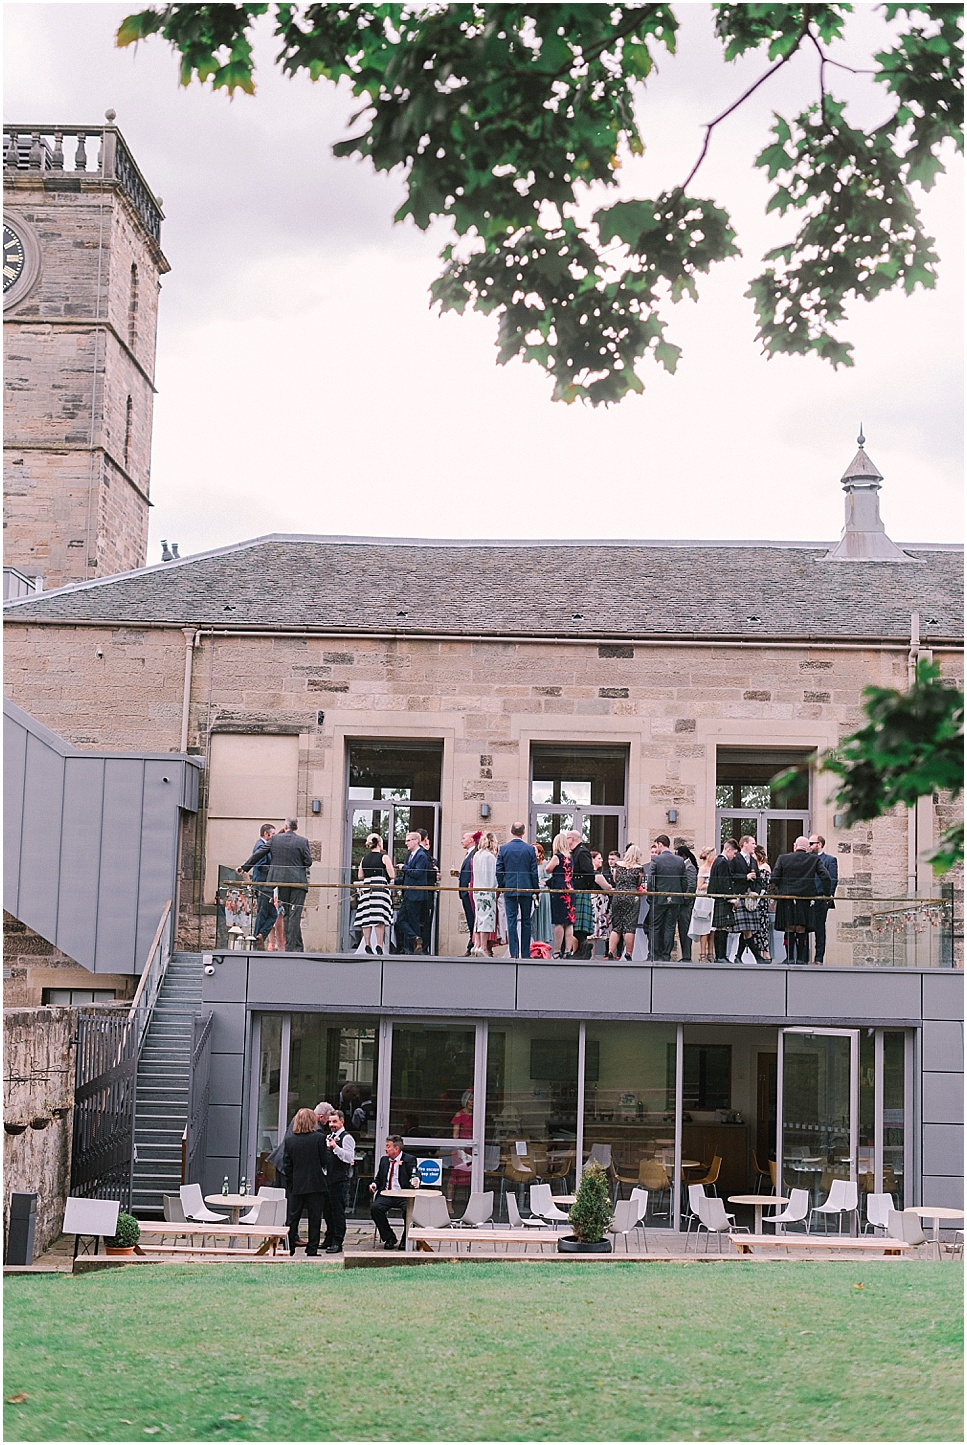 mareikemurray_wedding_photography_linlithgow_burgh_halls_062.jpg